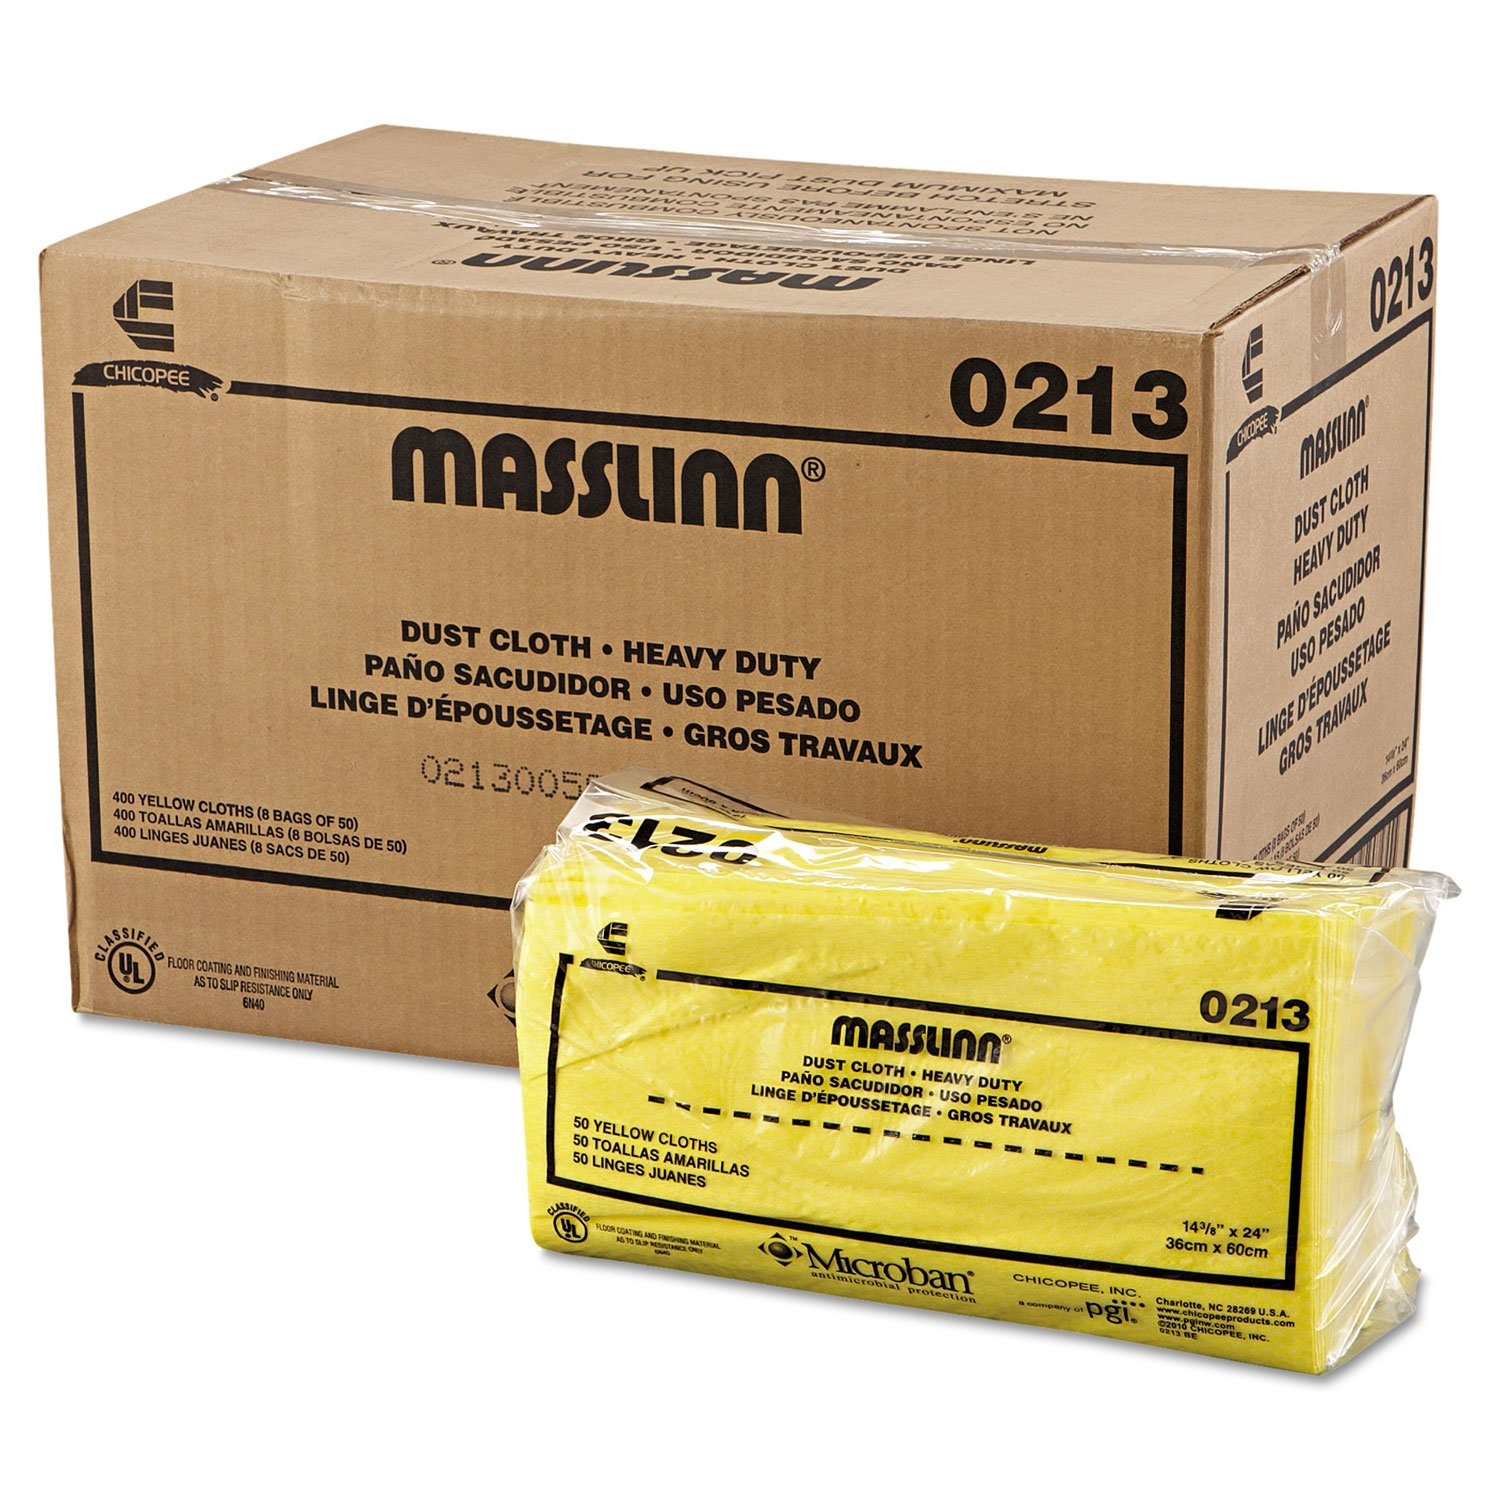 Chix 0213 Masslinn Dust Cloths, 24 x 16, Yellow, 400/Carton